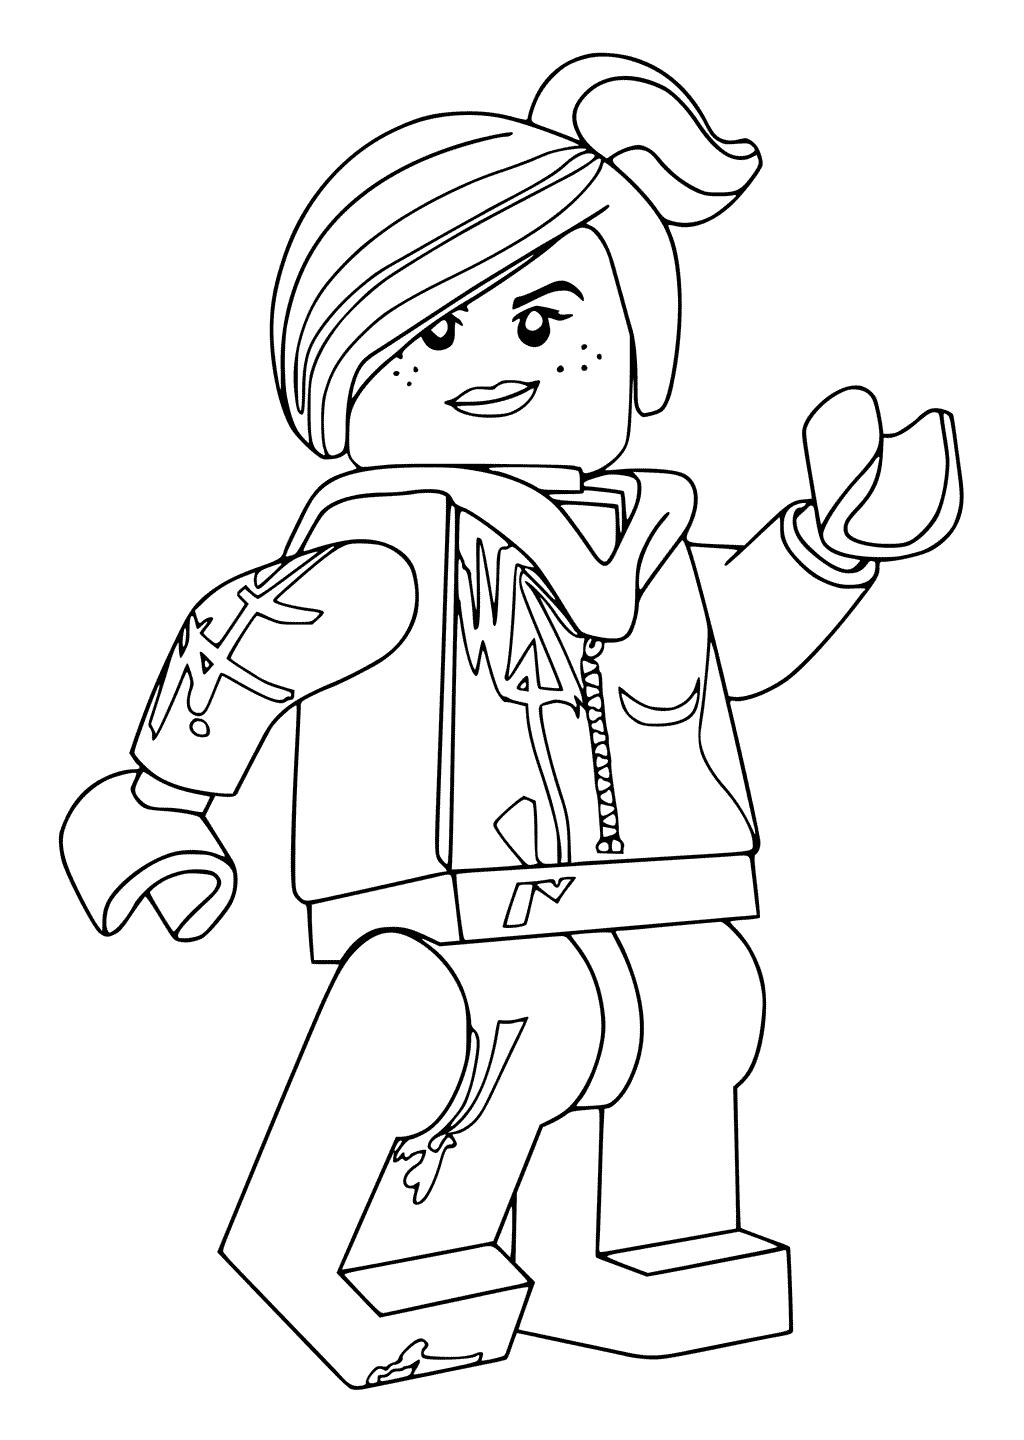 lego movie coloring page quotthe lego moviequot coloring pages lego page movie coloring